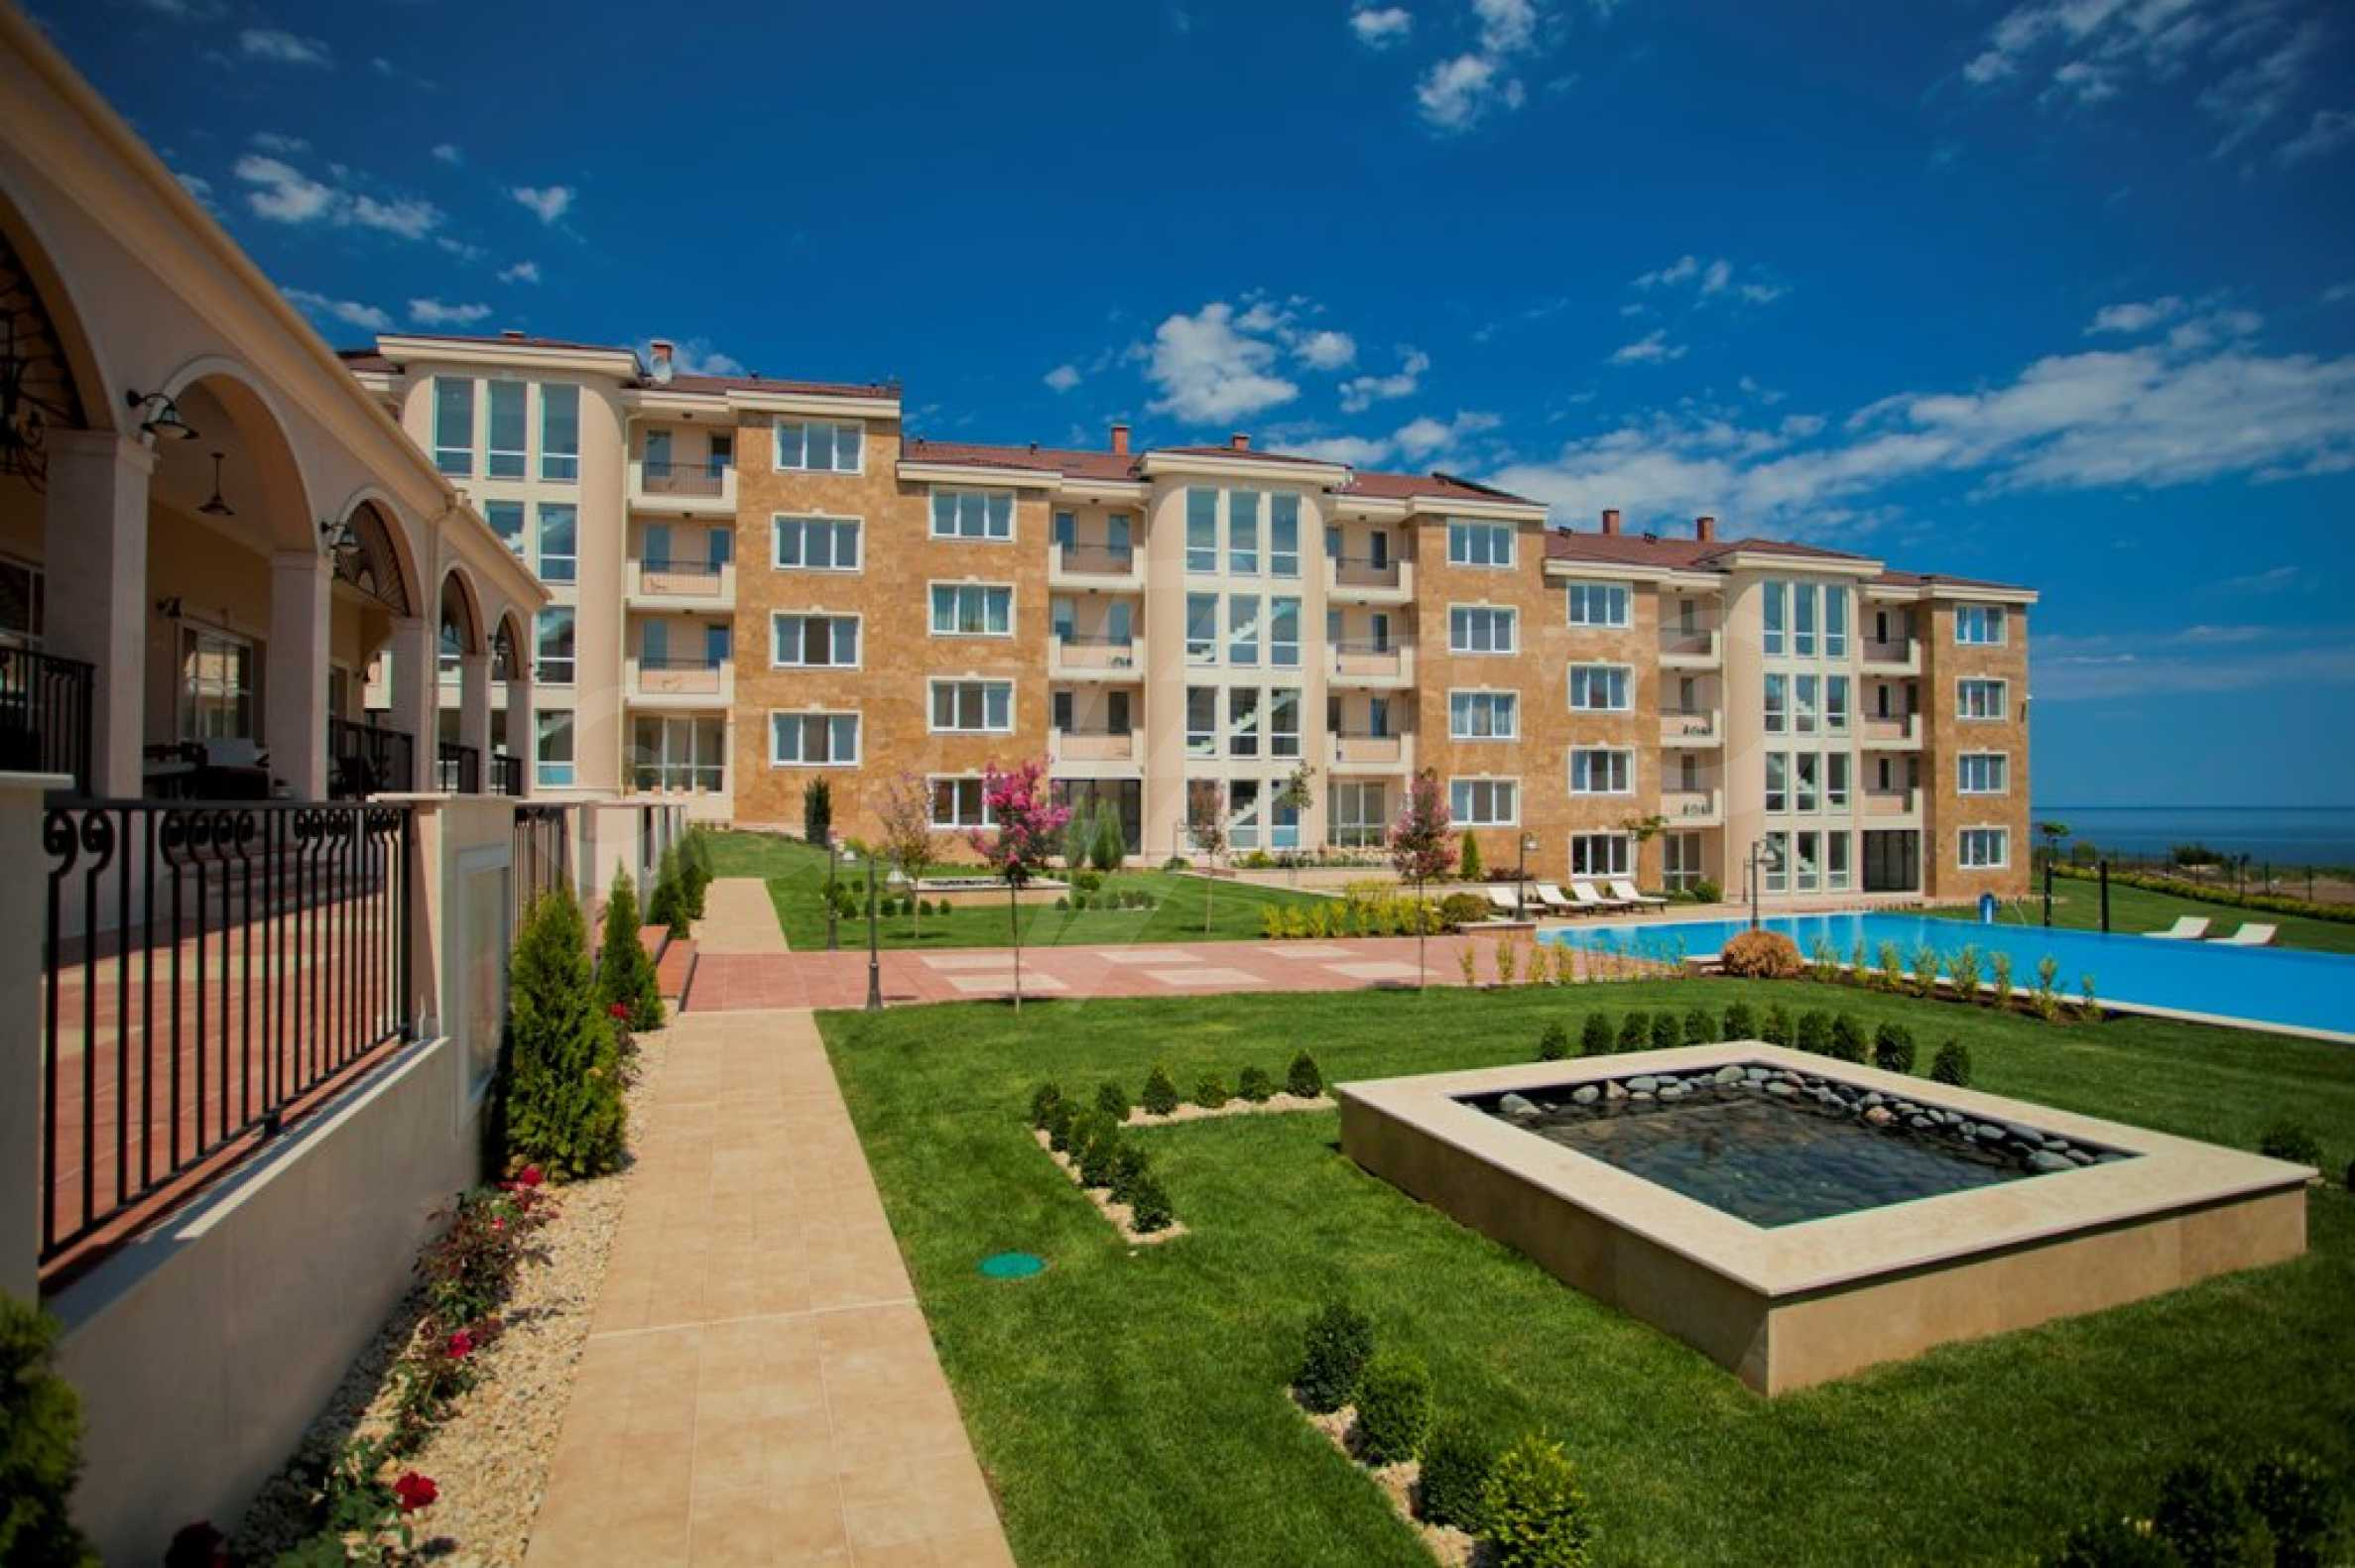 New apartment complex Atia resort in Chernomorets 12